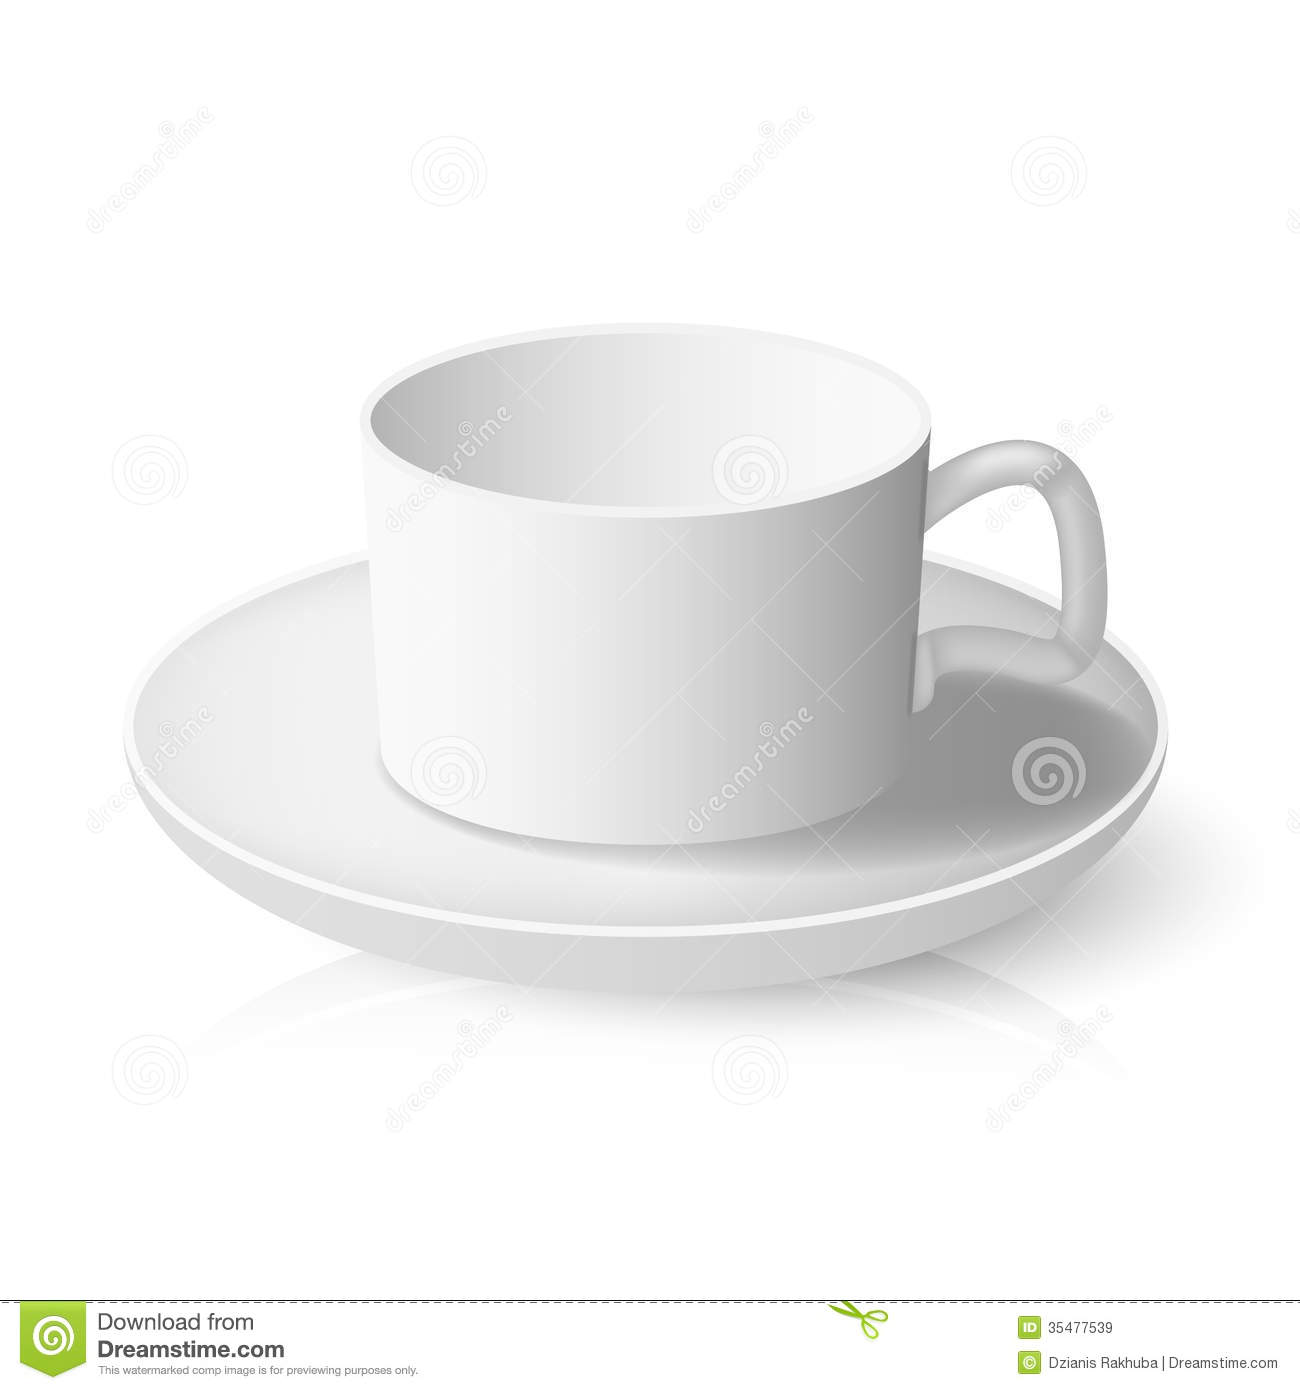 Tea cup stock vector. Image of object, design, saucer ...